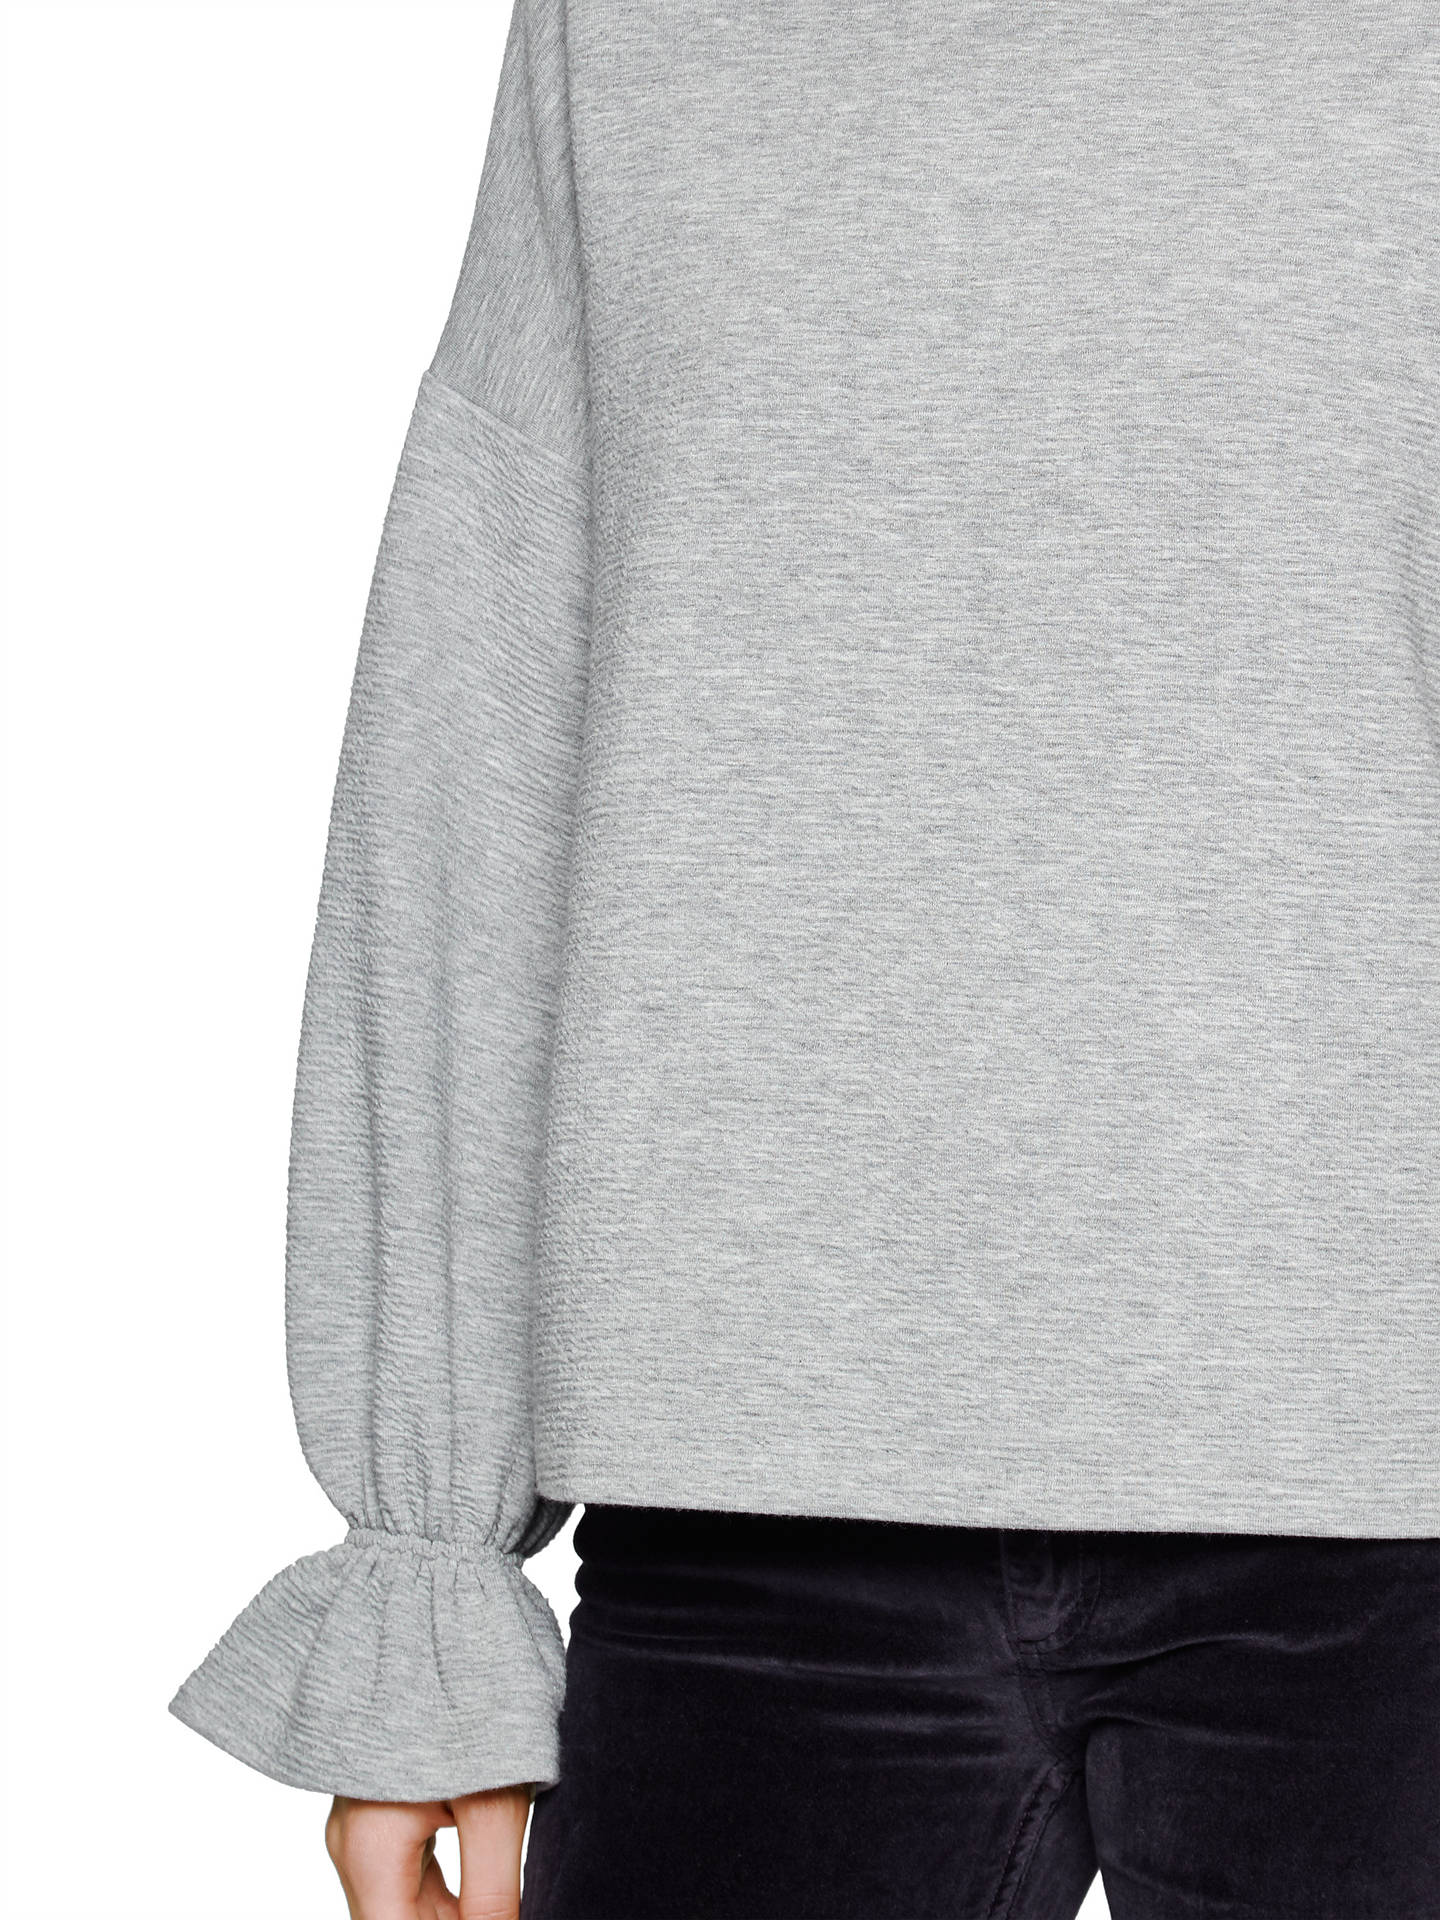 51be31da631 ... Buy French Connection Ellen Textured Jumper, Grey, XS Online at  johnlewis.com ...